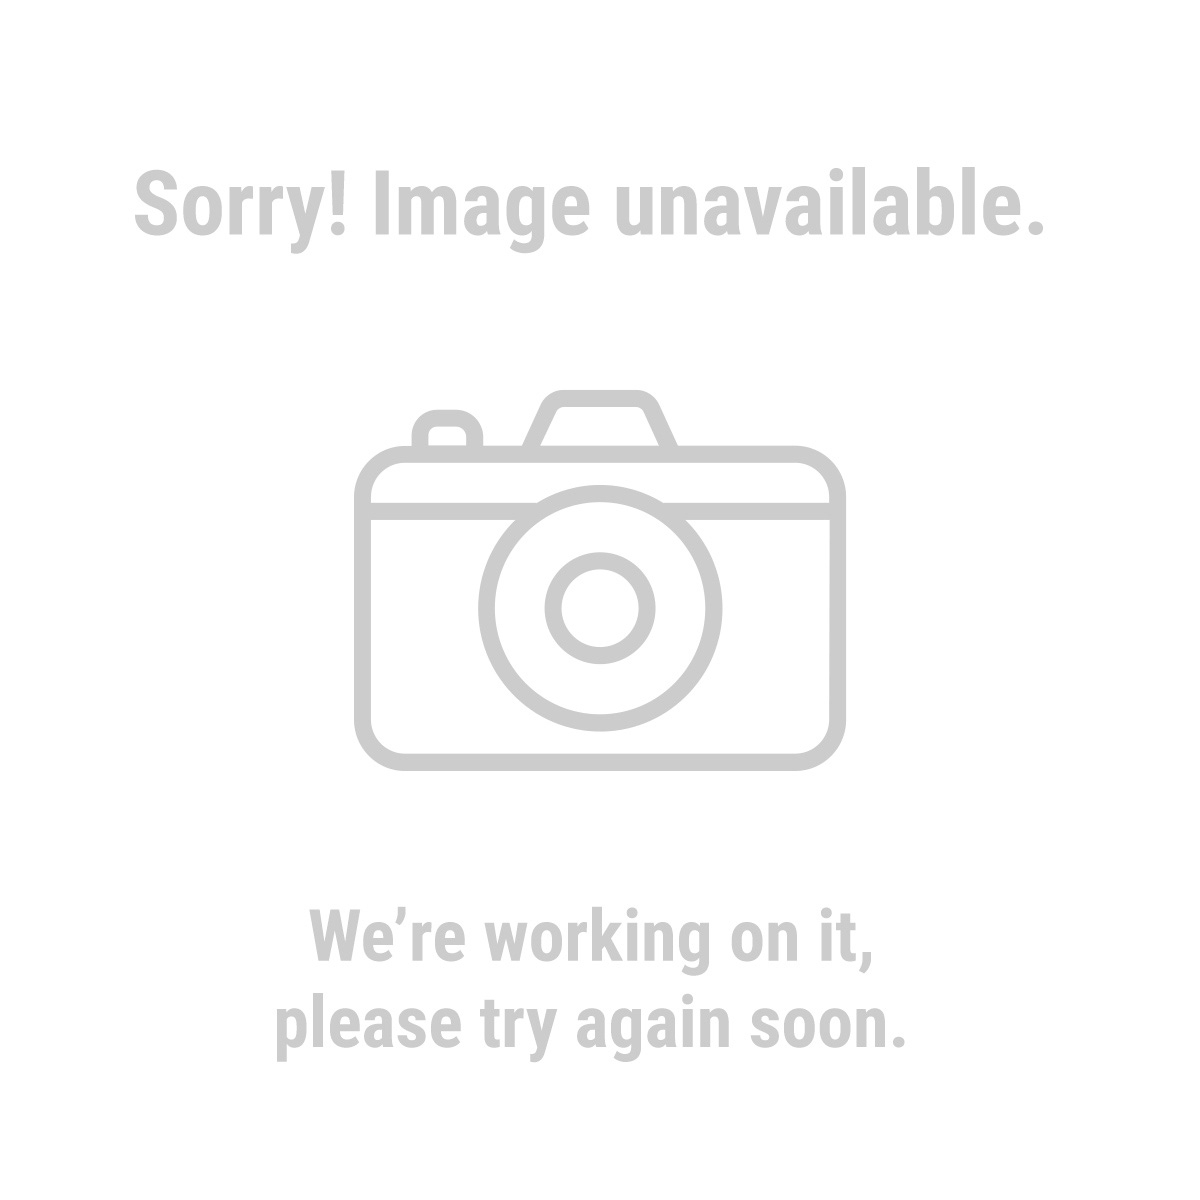 HFT 69132 11 ft. 4'' x 11 ft. 6'' All Purpose Weather Resistant Tarp